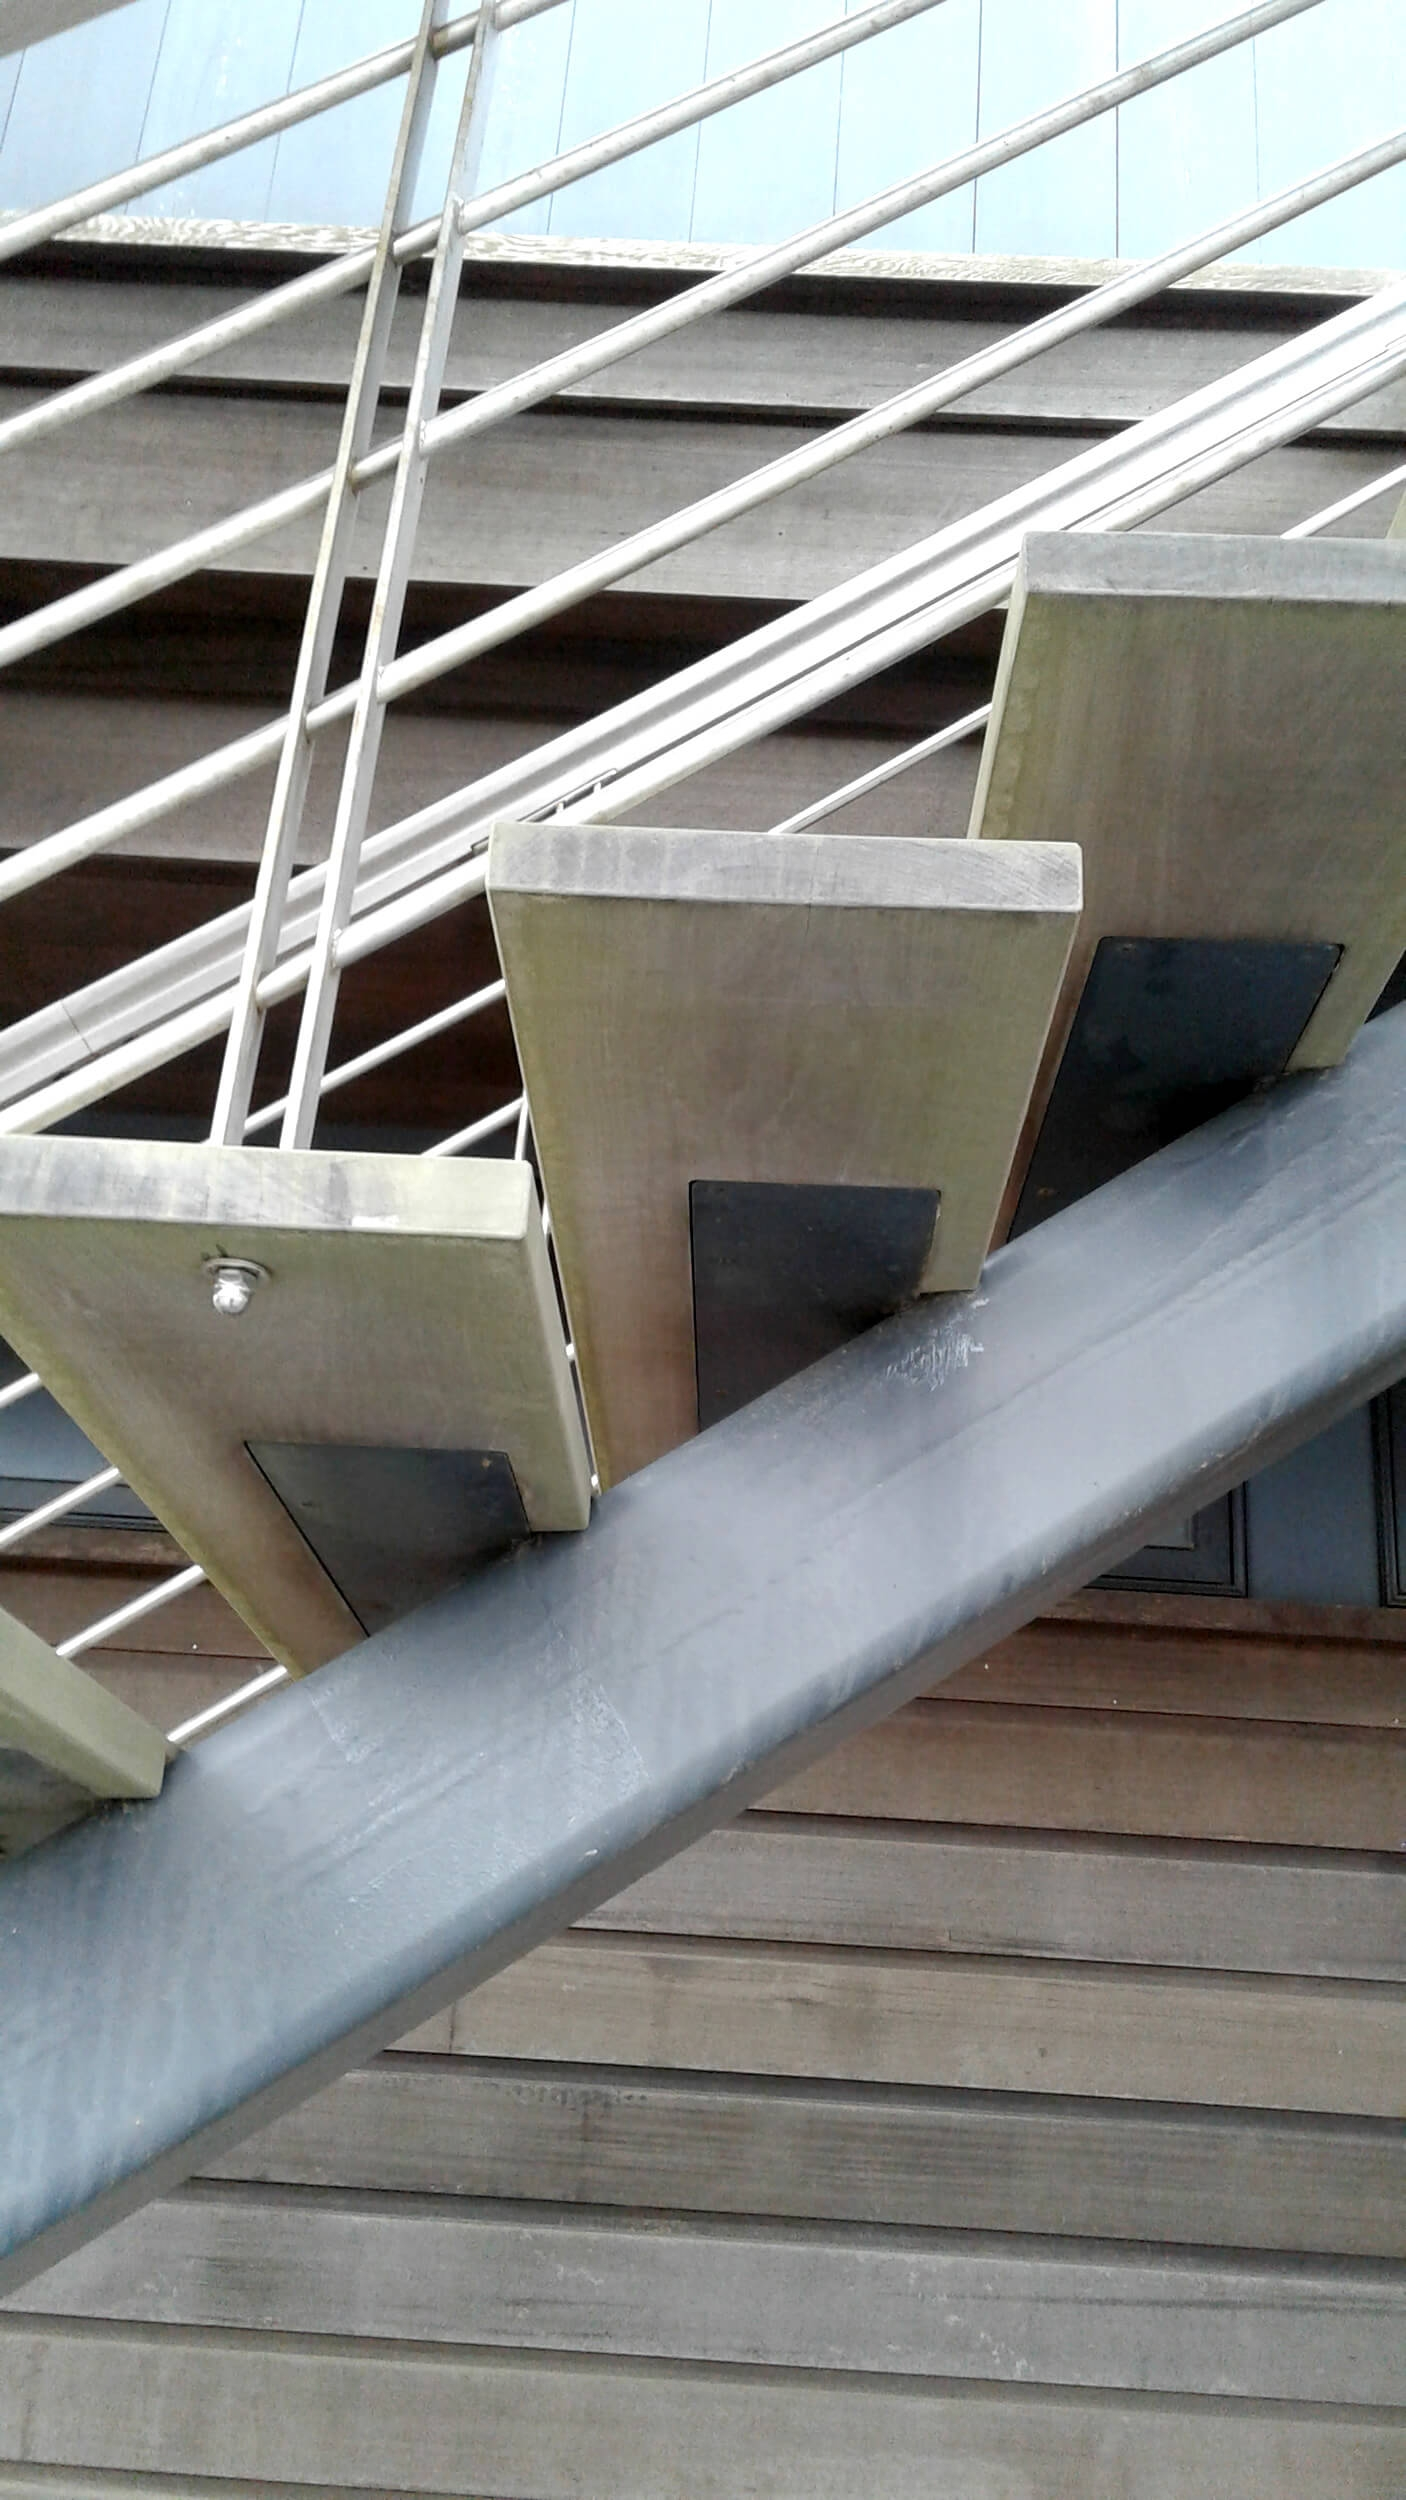 Architectural — Wellfleet Steel Works   Tubular Design For Stairs   Finished   Minimalist   Decorative Wood Railing   Contemporary   Home Tower